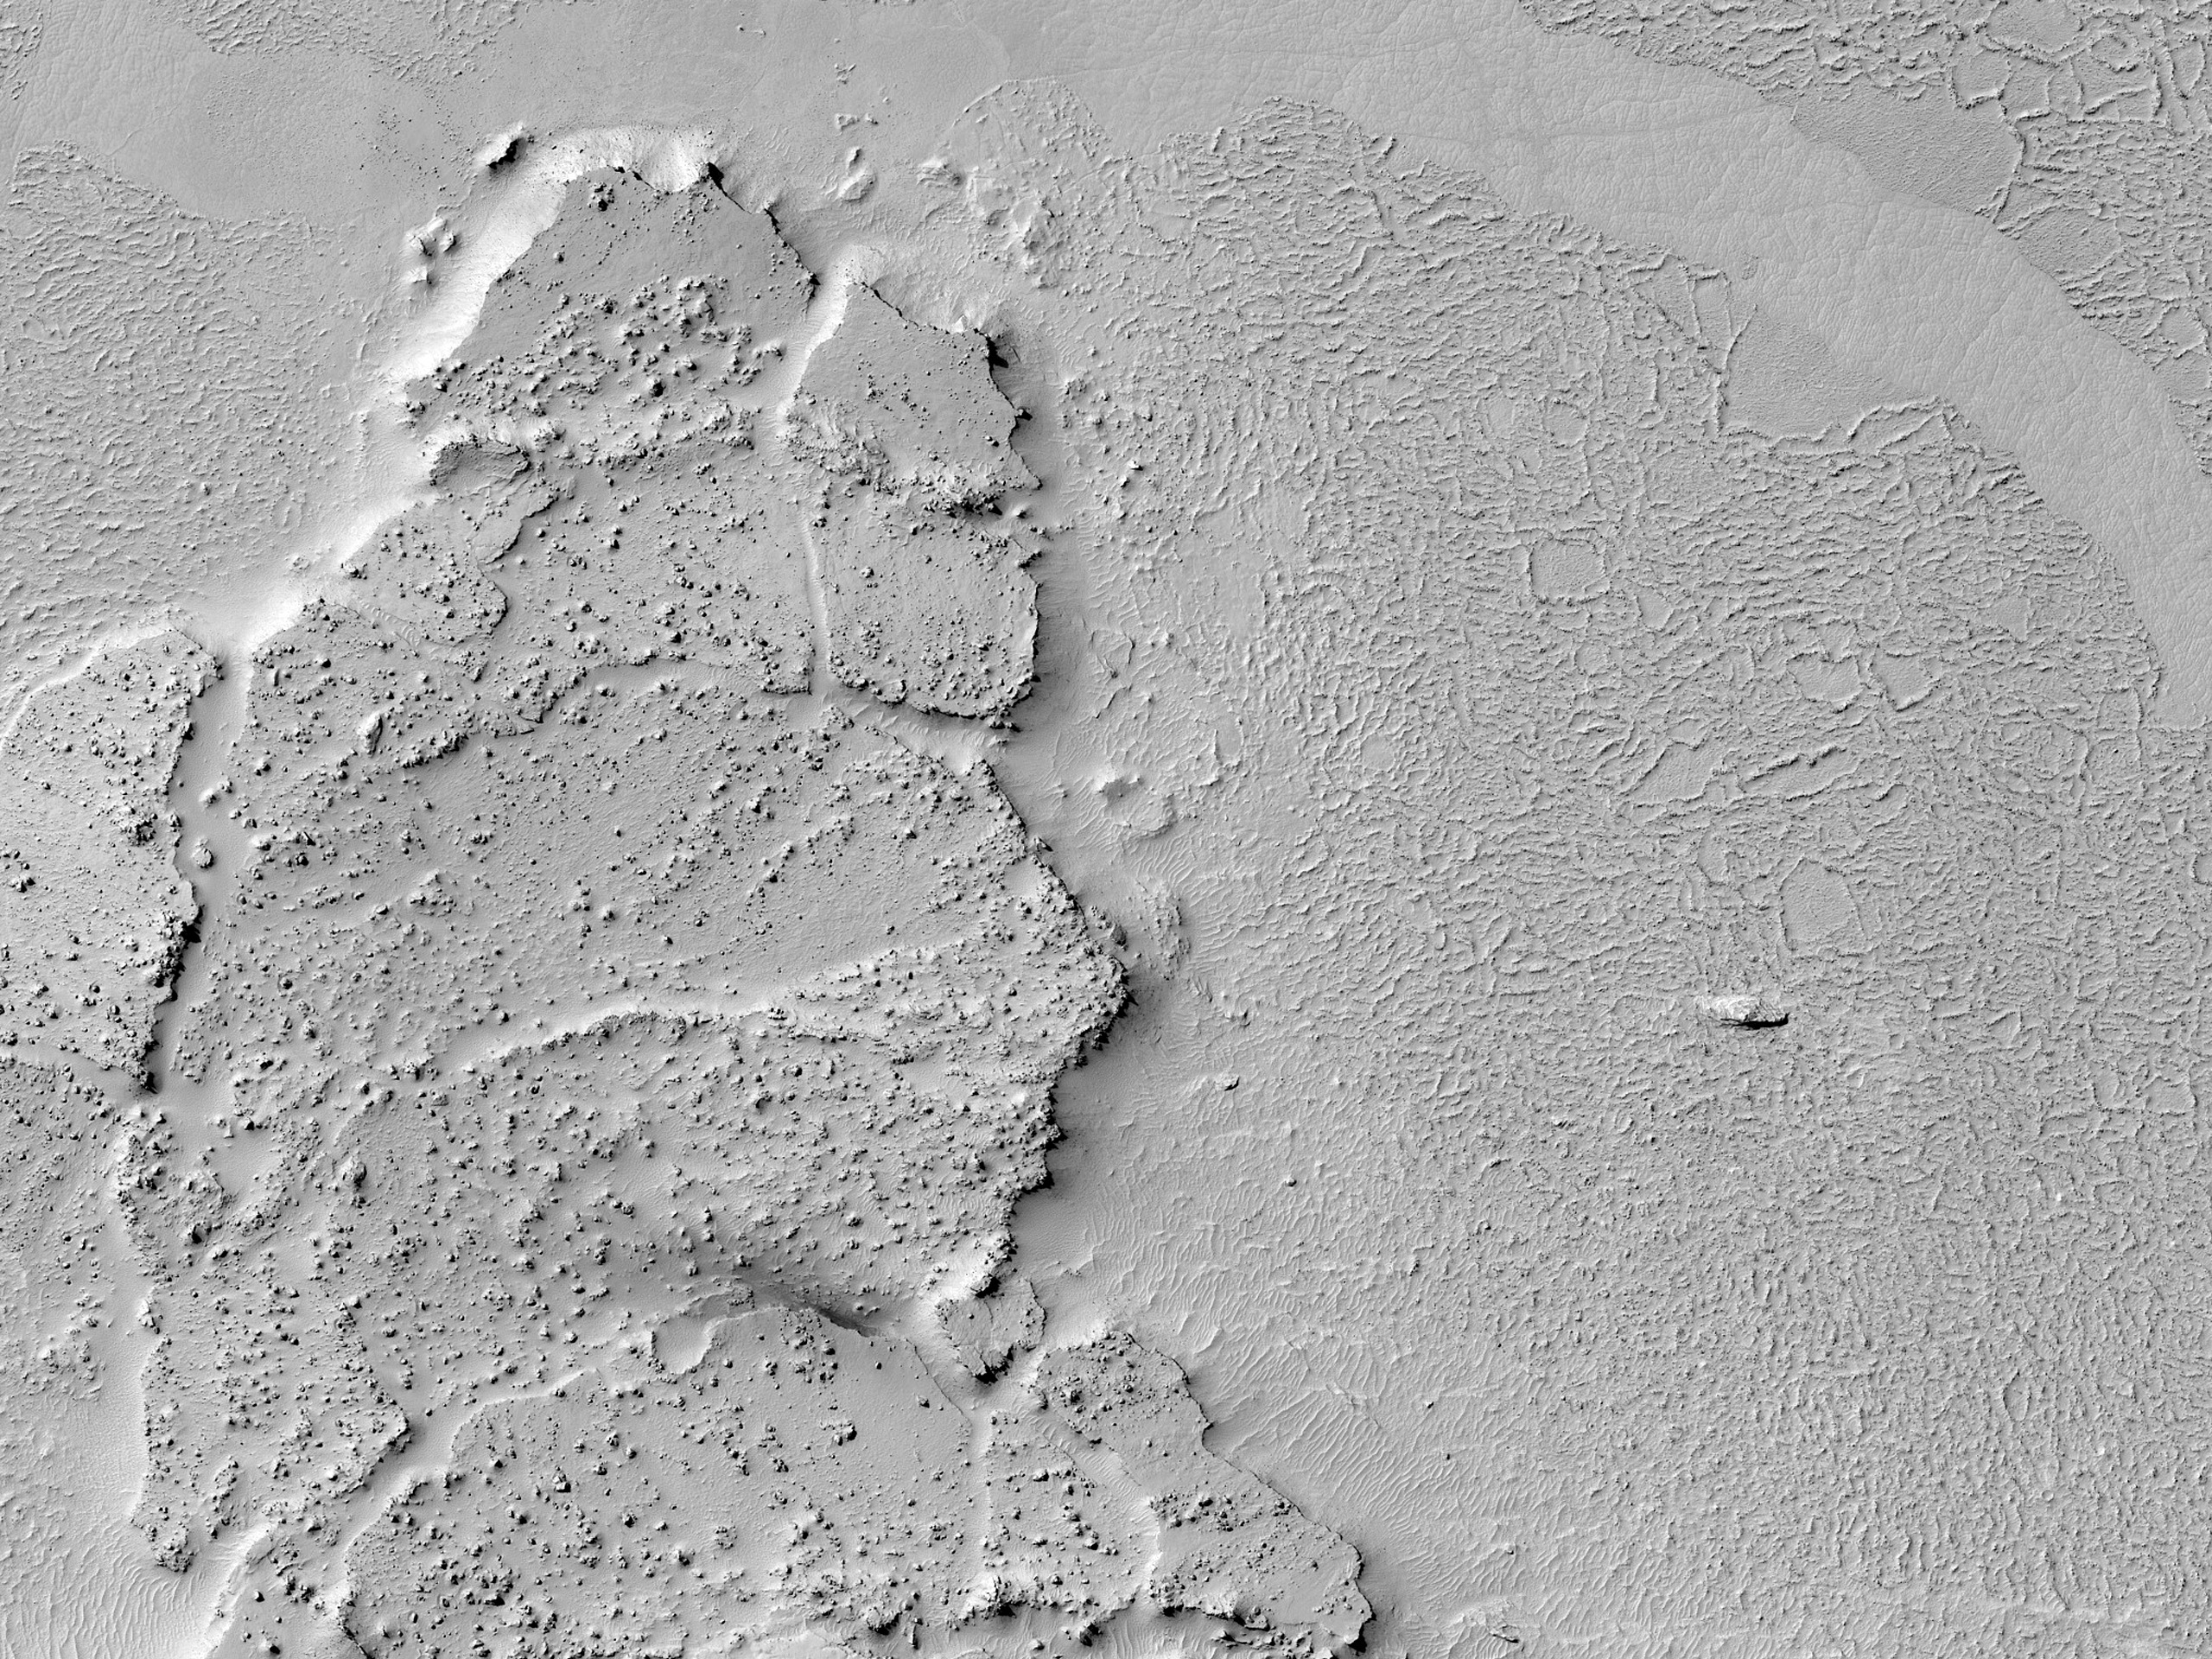 Lava Contact in Athabasca Valles